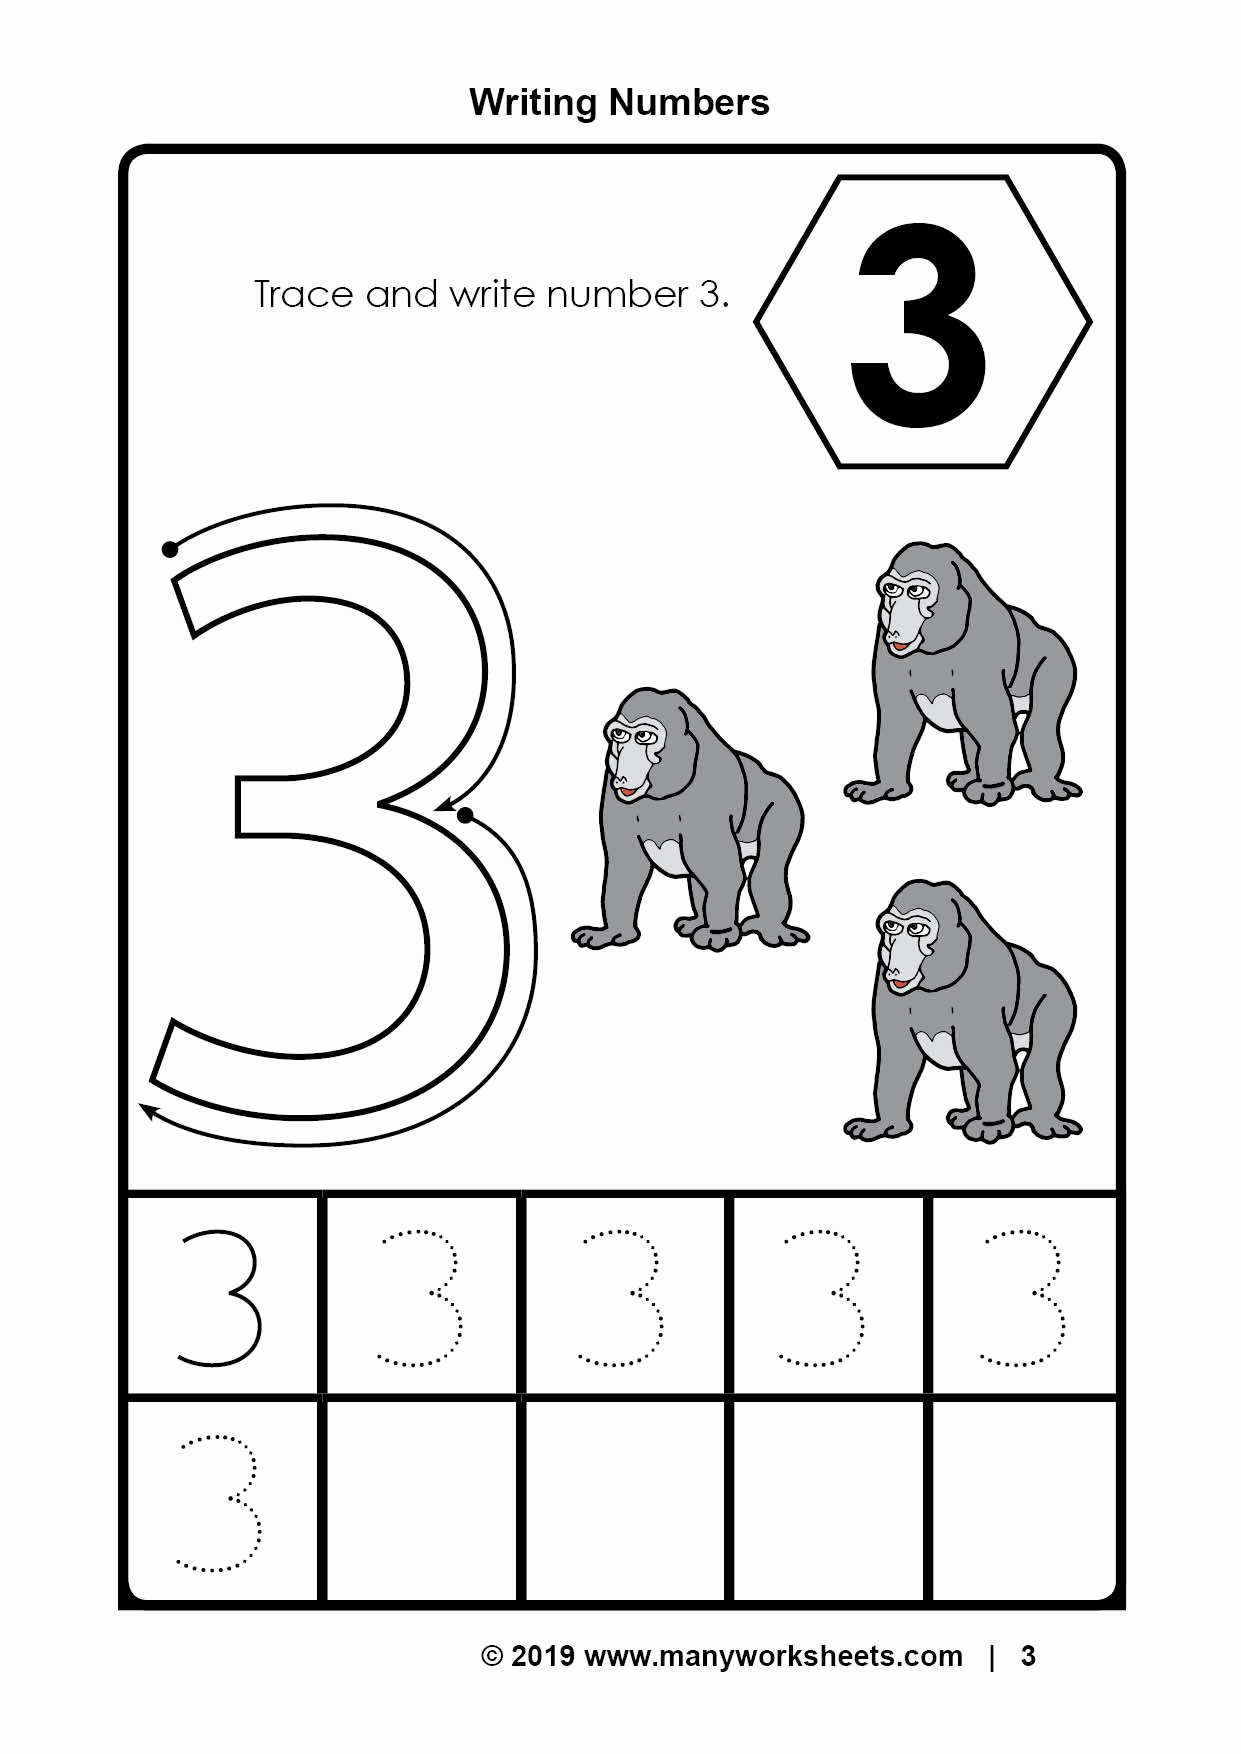 Number 3 Worksheets for Preschoolers New Tracing Number 3 Worksheets for Kindergarten